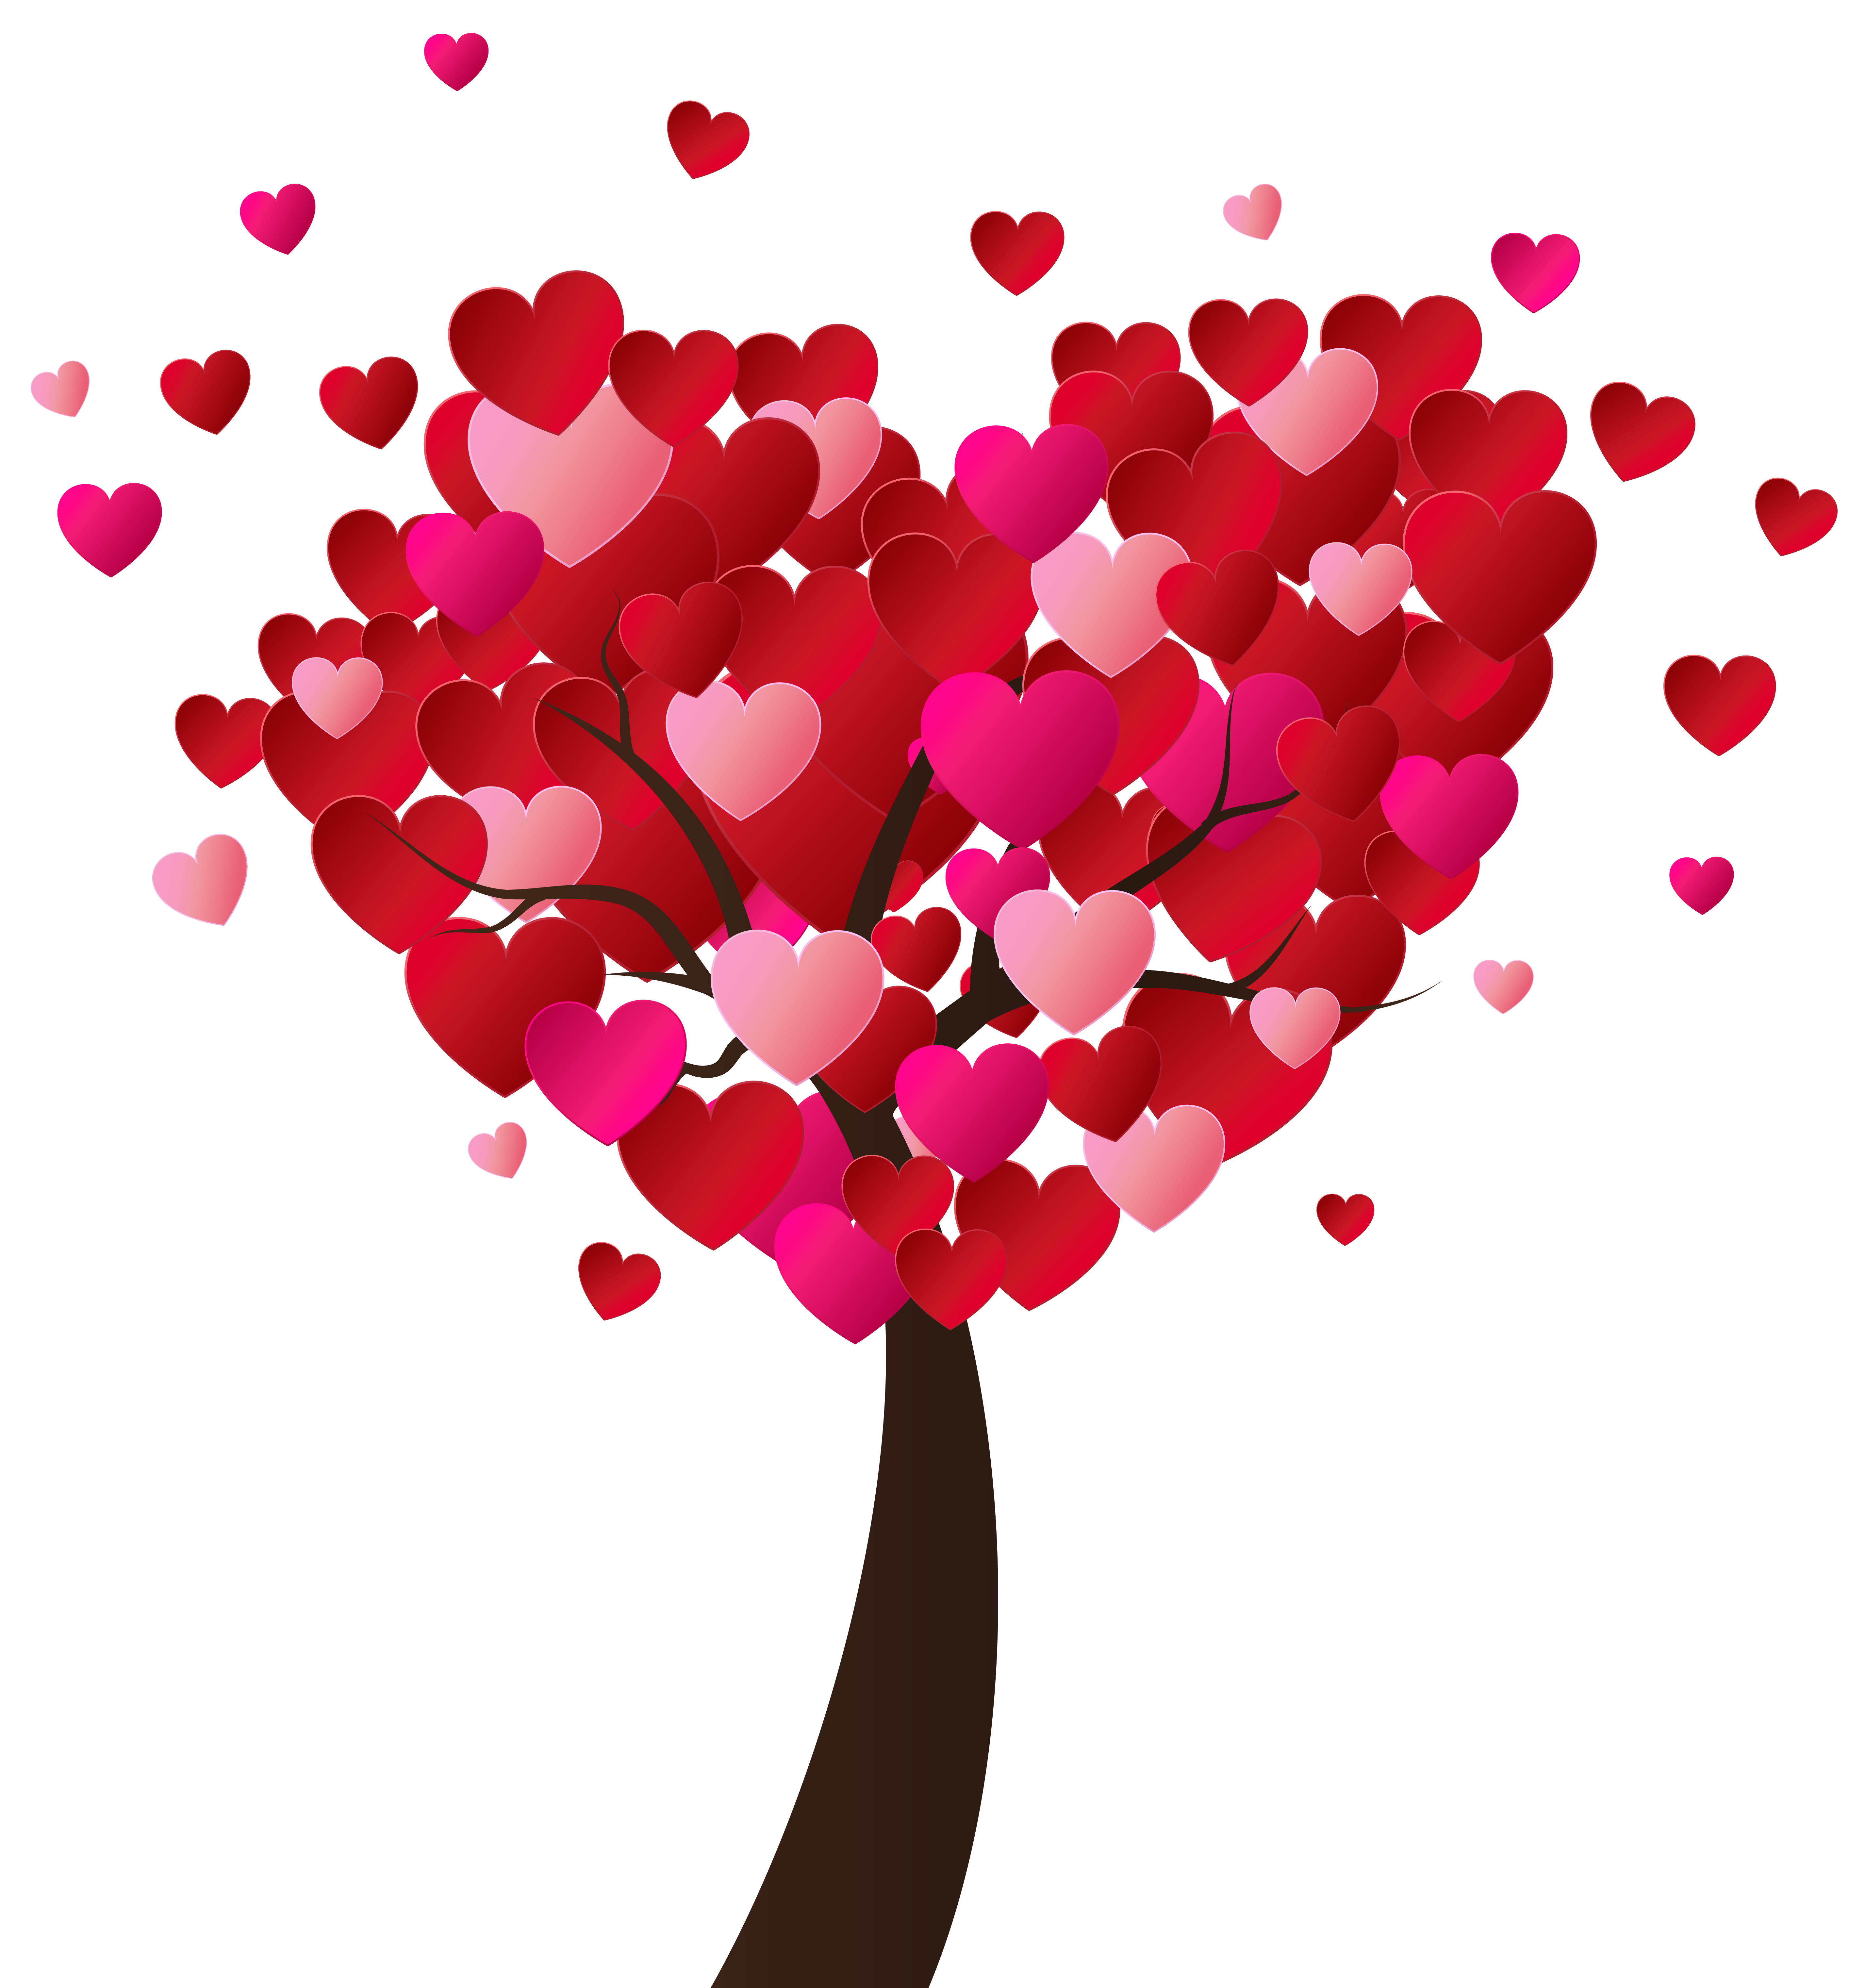 Free clipart valentines day hearts graphic free stock Valentine's Day Heart Tree PNG Clip-Art Image graphic free stock